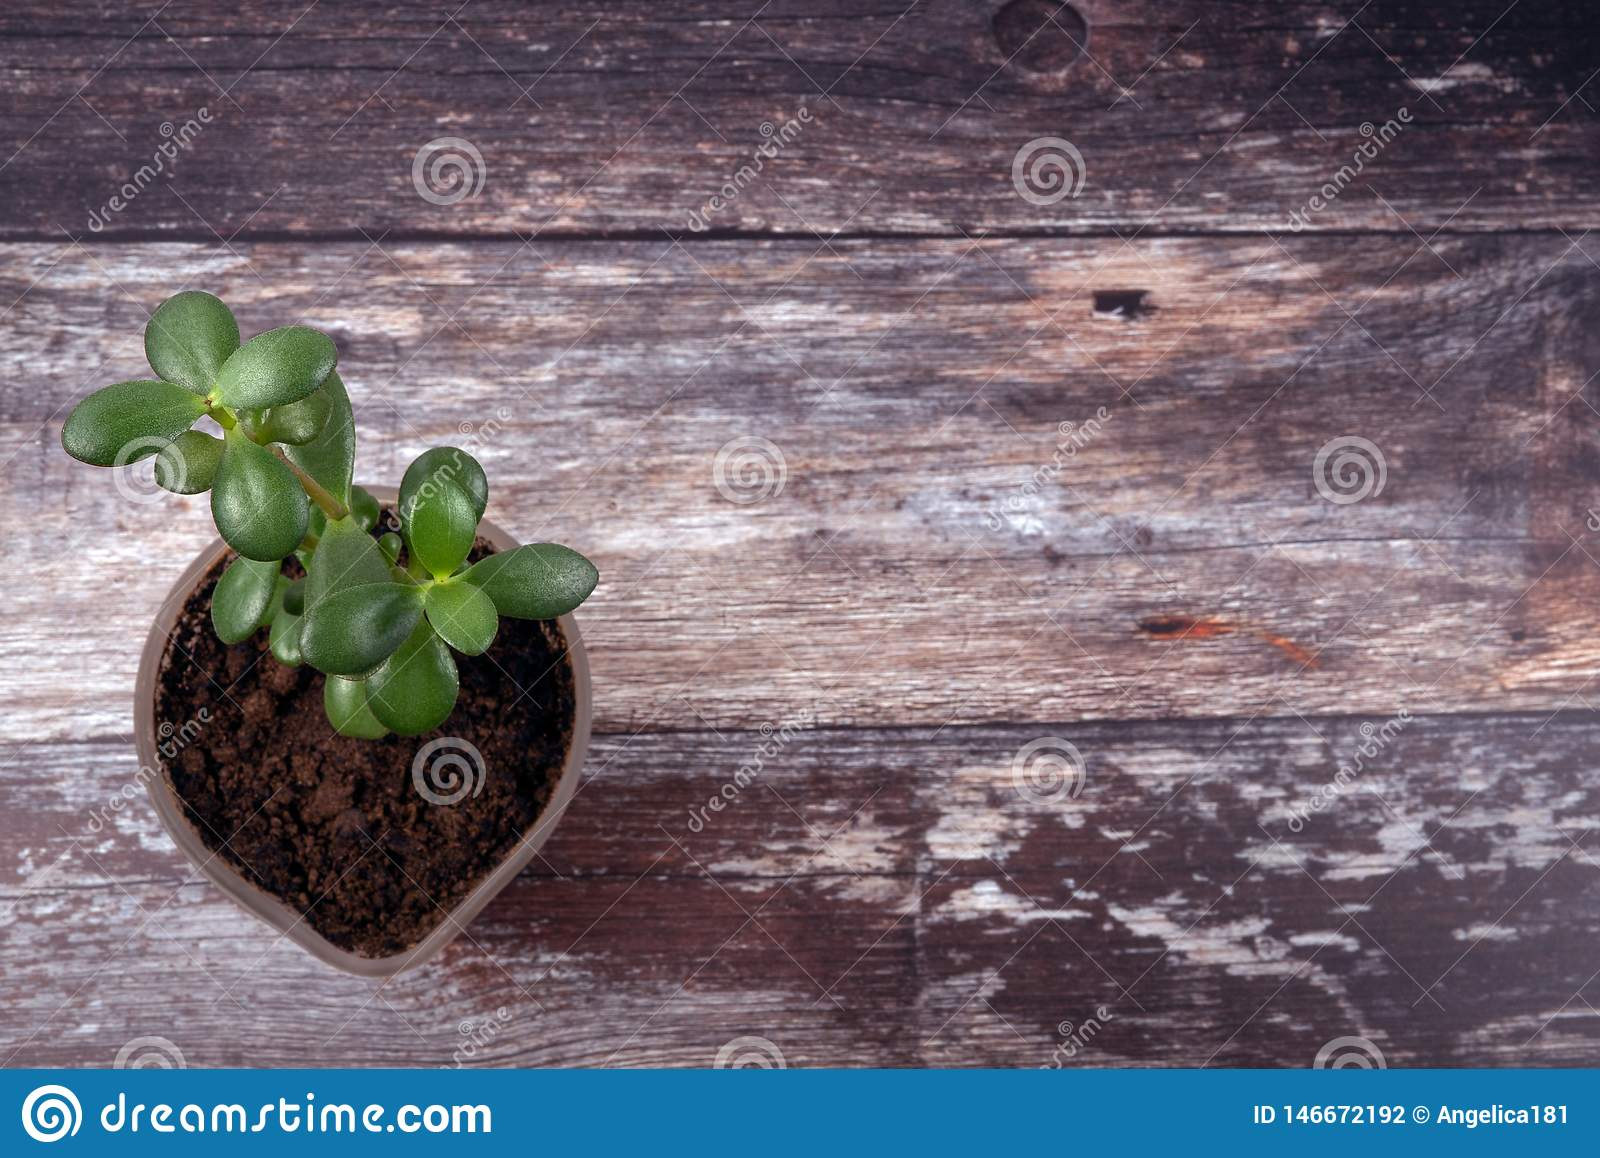 Top View Of Green Trendy Small Succulent Plant Growing In New Soil On A Weathered Wooden Tabletop Background Stock Photo Image Of Overhead Flowerpot 146672192